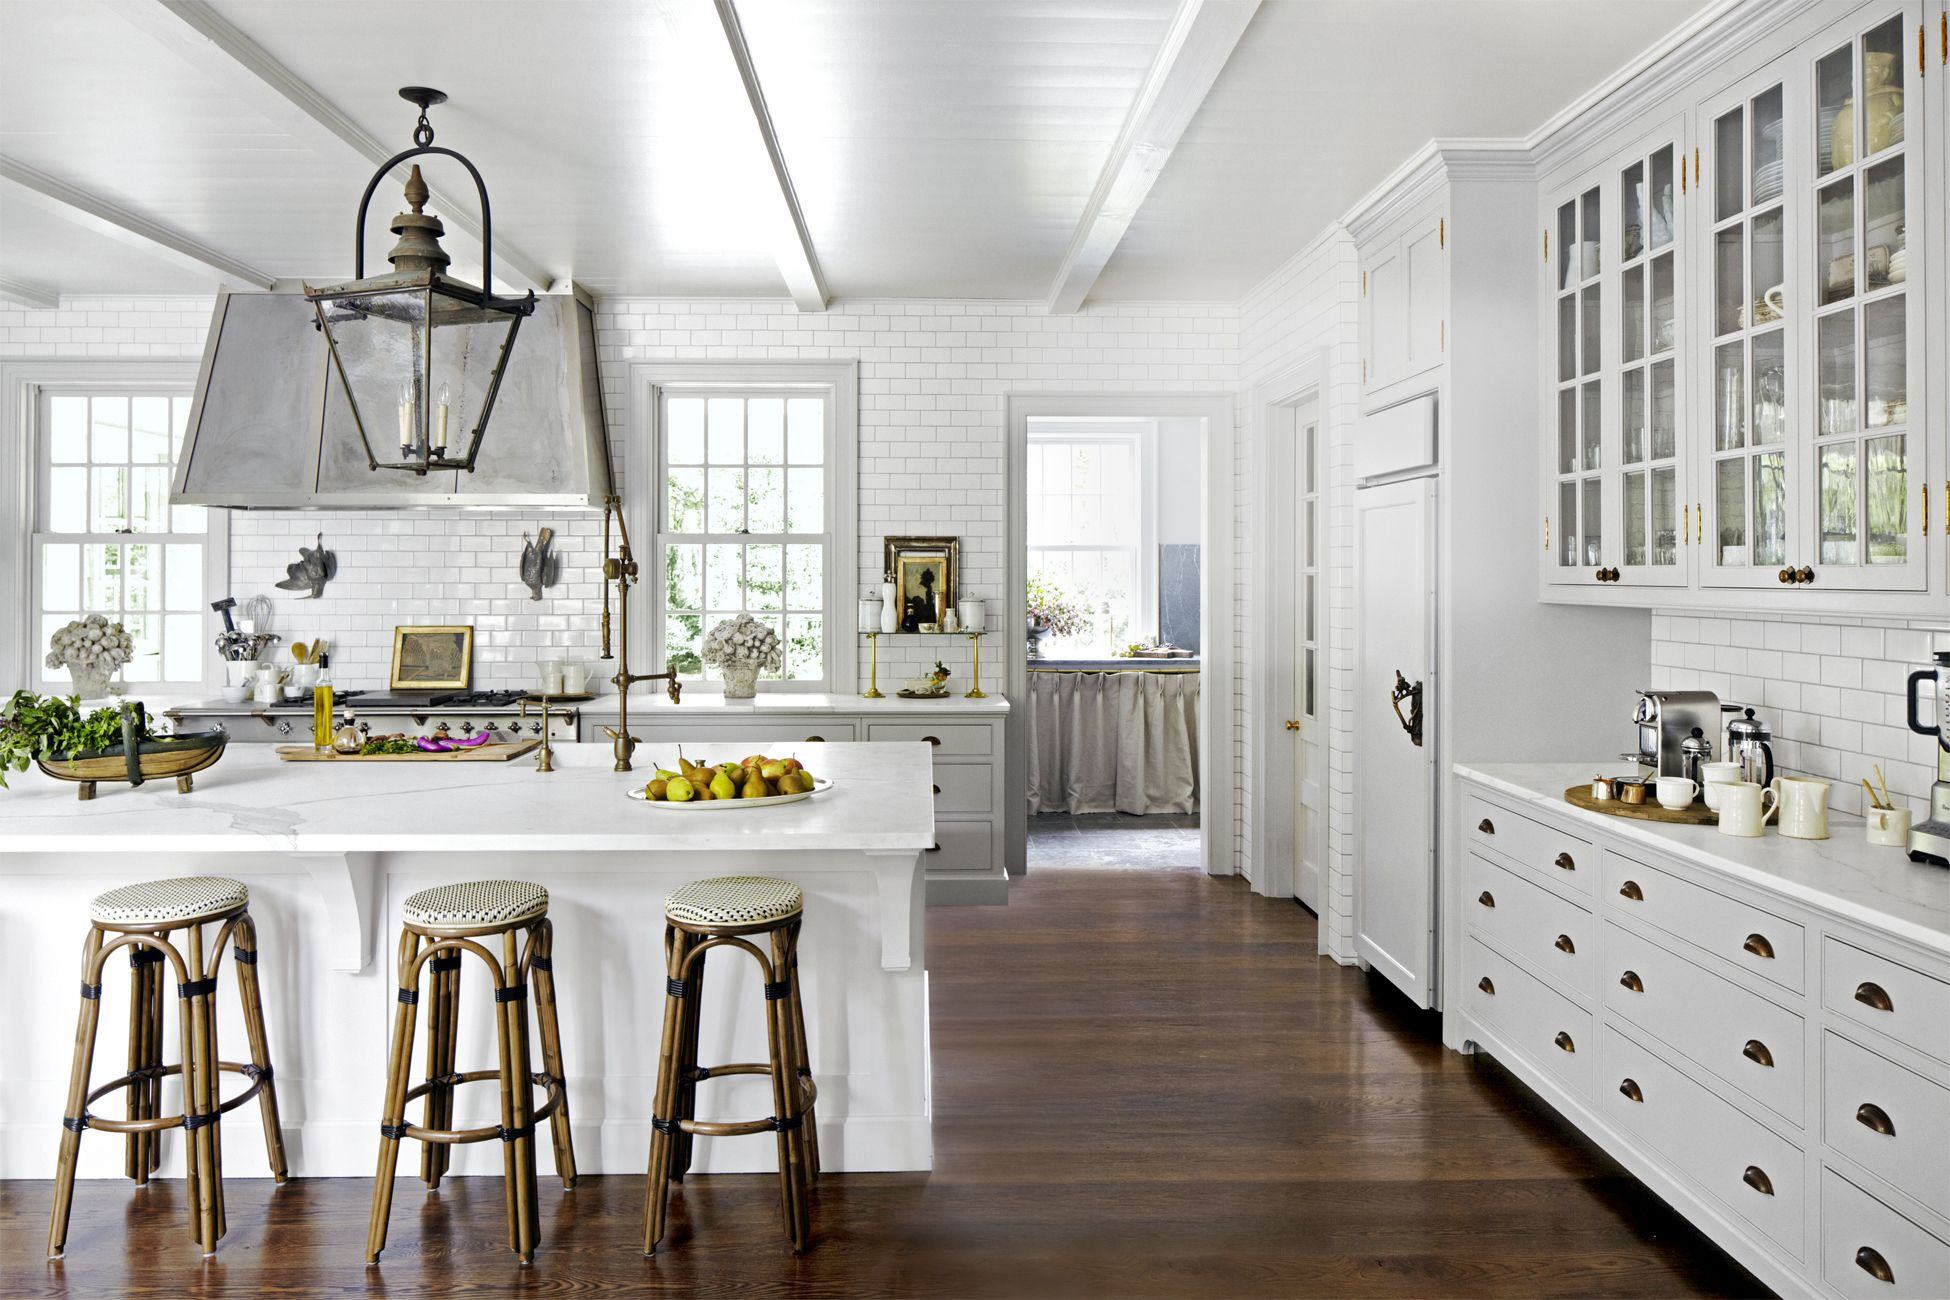 12 Gorgeous Kitchen Trends for 2019 New Cabinet and Color Design Ideas